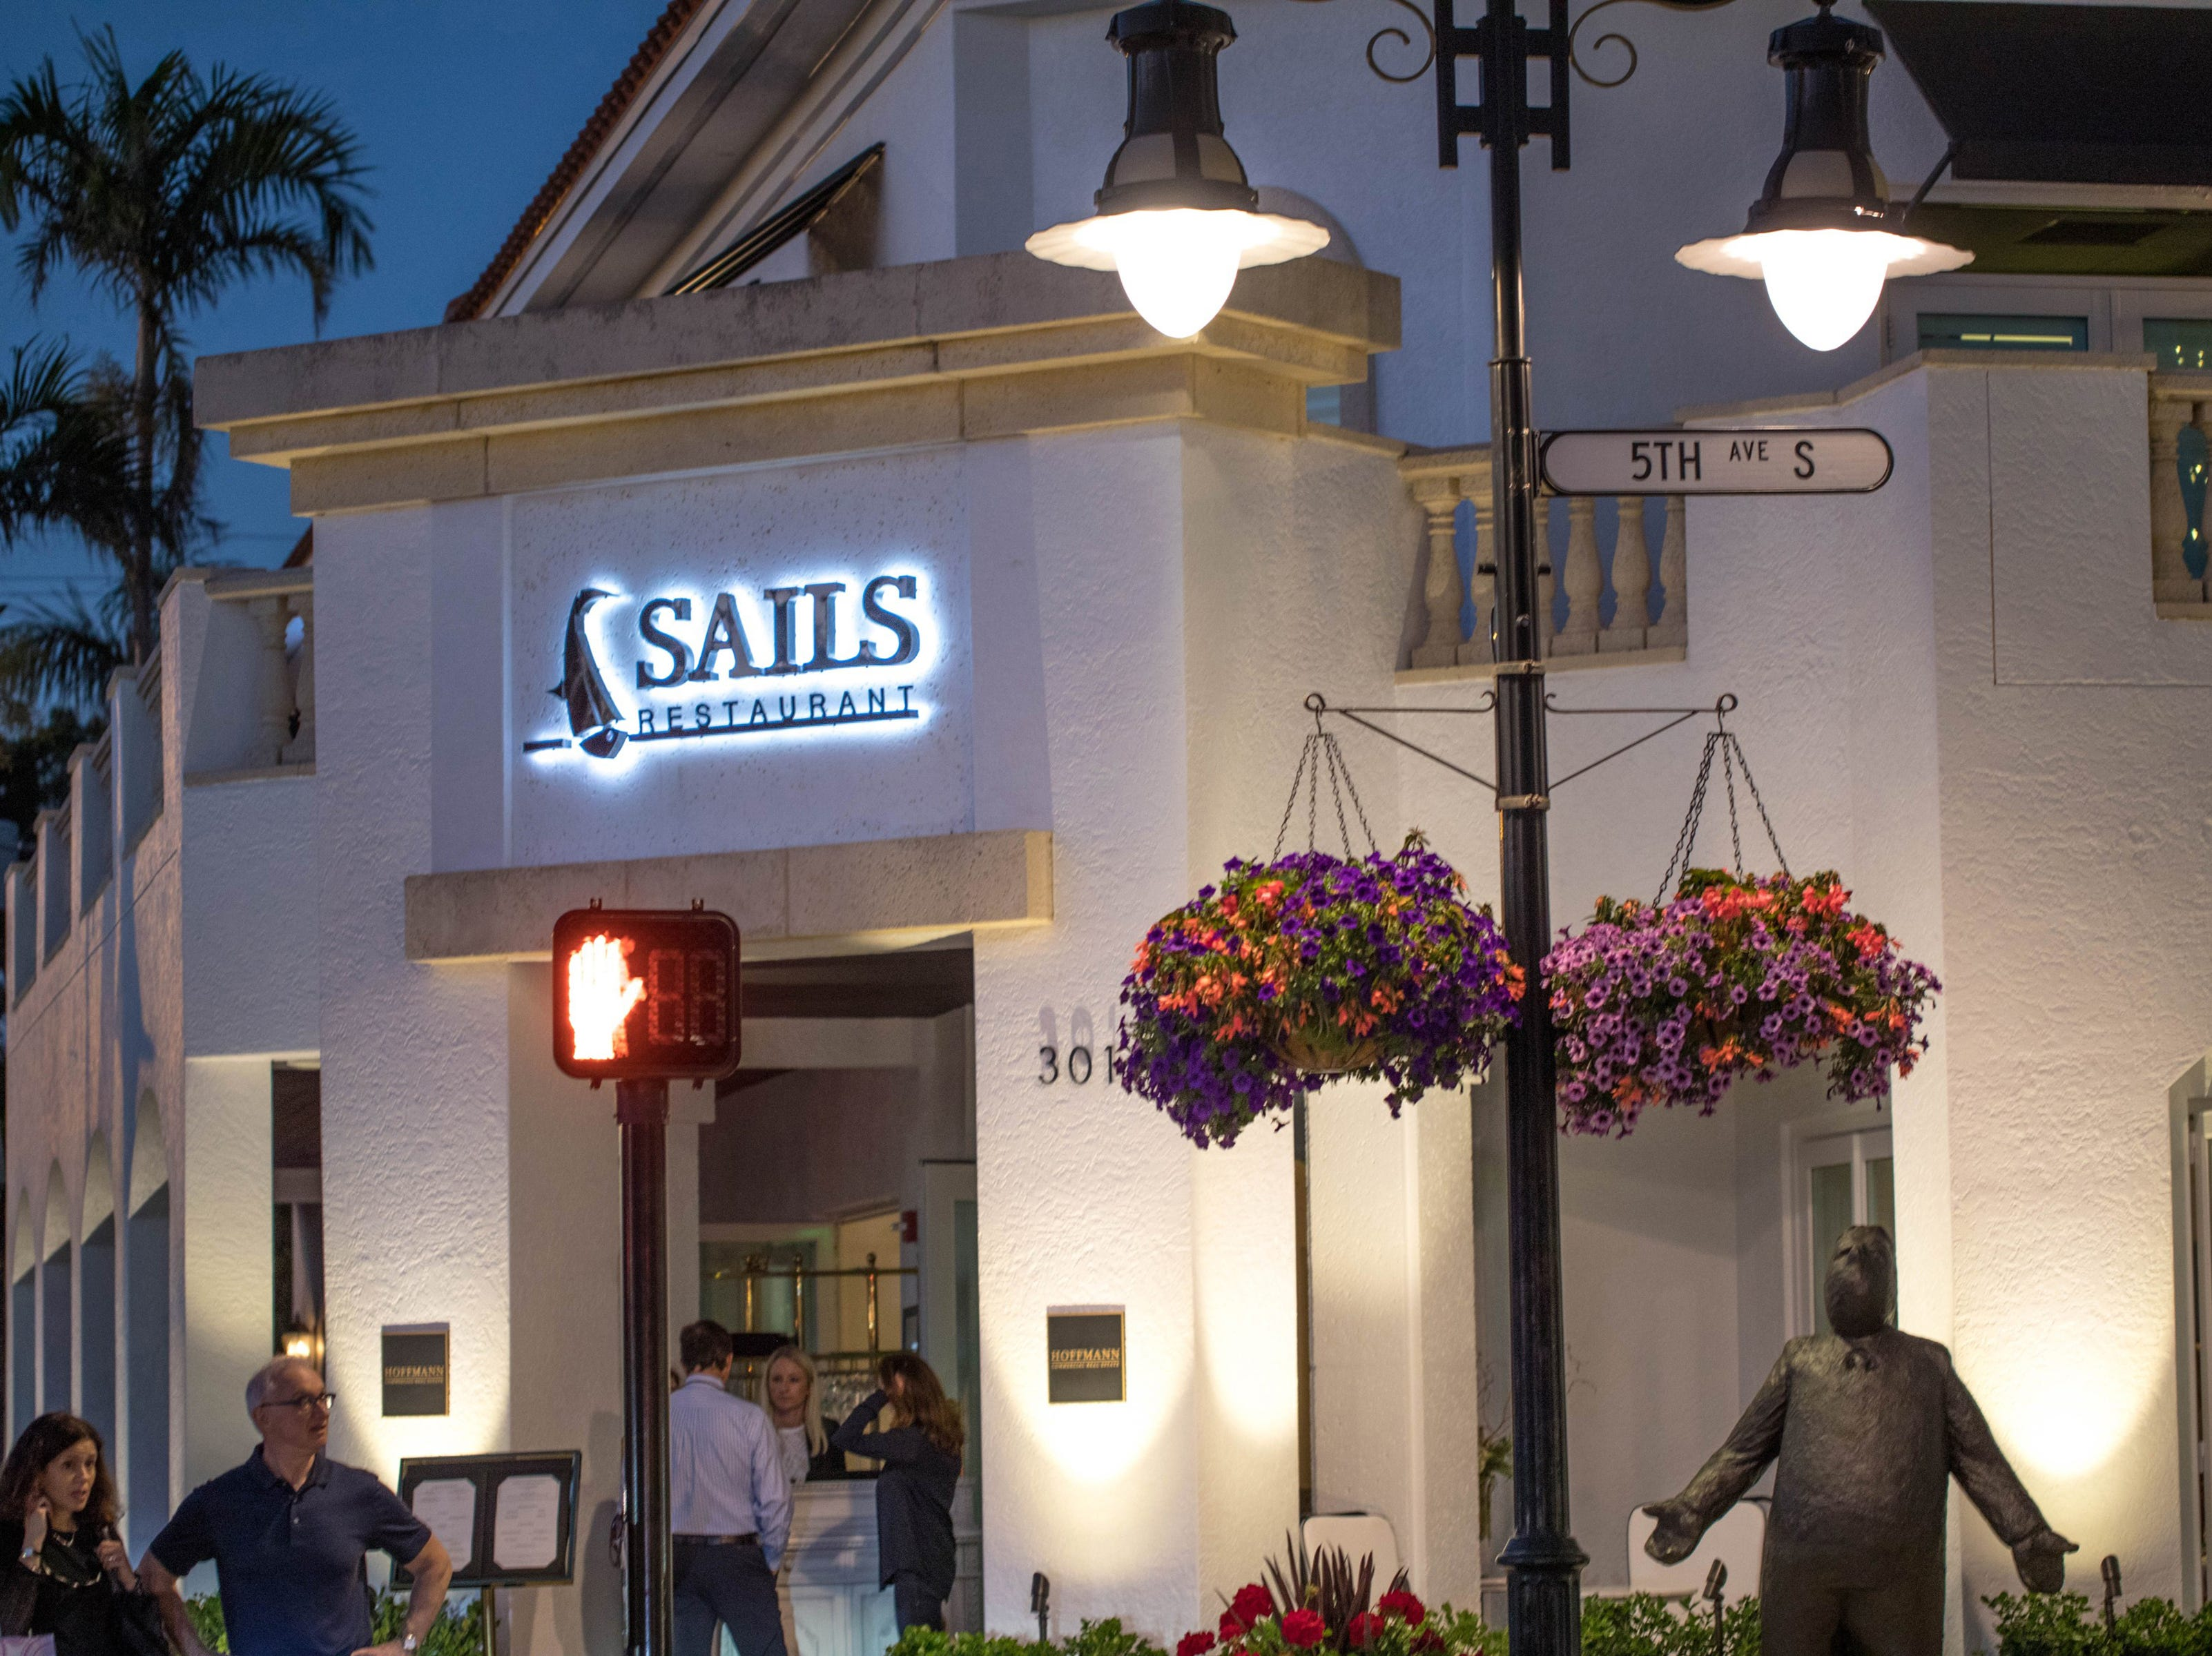 Sails Restaurant launched in February 2018 on the northeast corner of Fifth Avenue South and Third Street South in downtown Naples.